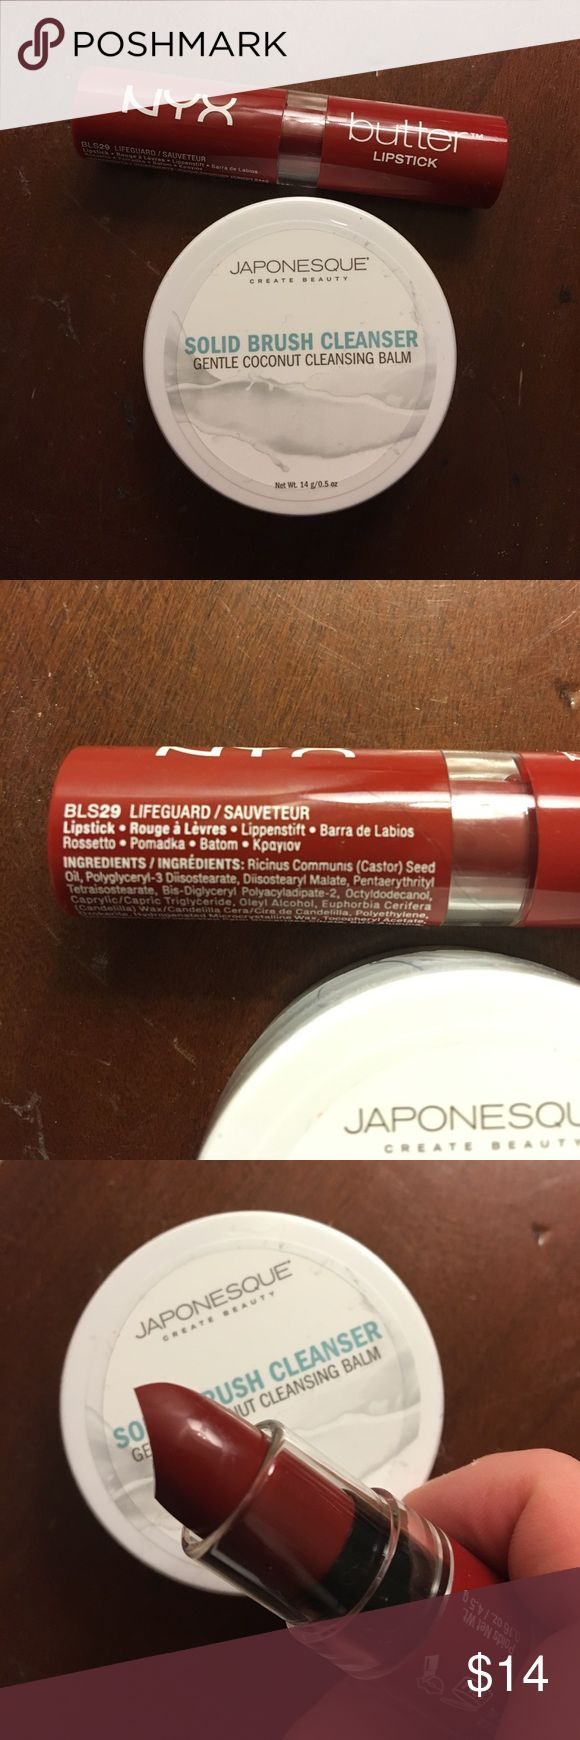 NYC Lipstick and Japonesque Makeup brush cleaner Full-size NYX Butter Lipstick and 0.5 oz Japonesque solid brush cleanser. Neither have been opened nor used. The color of the lipstick is a pretty deep red. NYX Makeup Lipstick